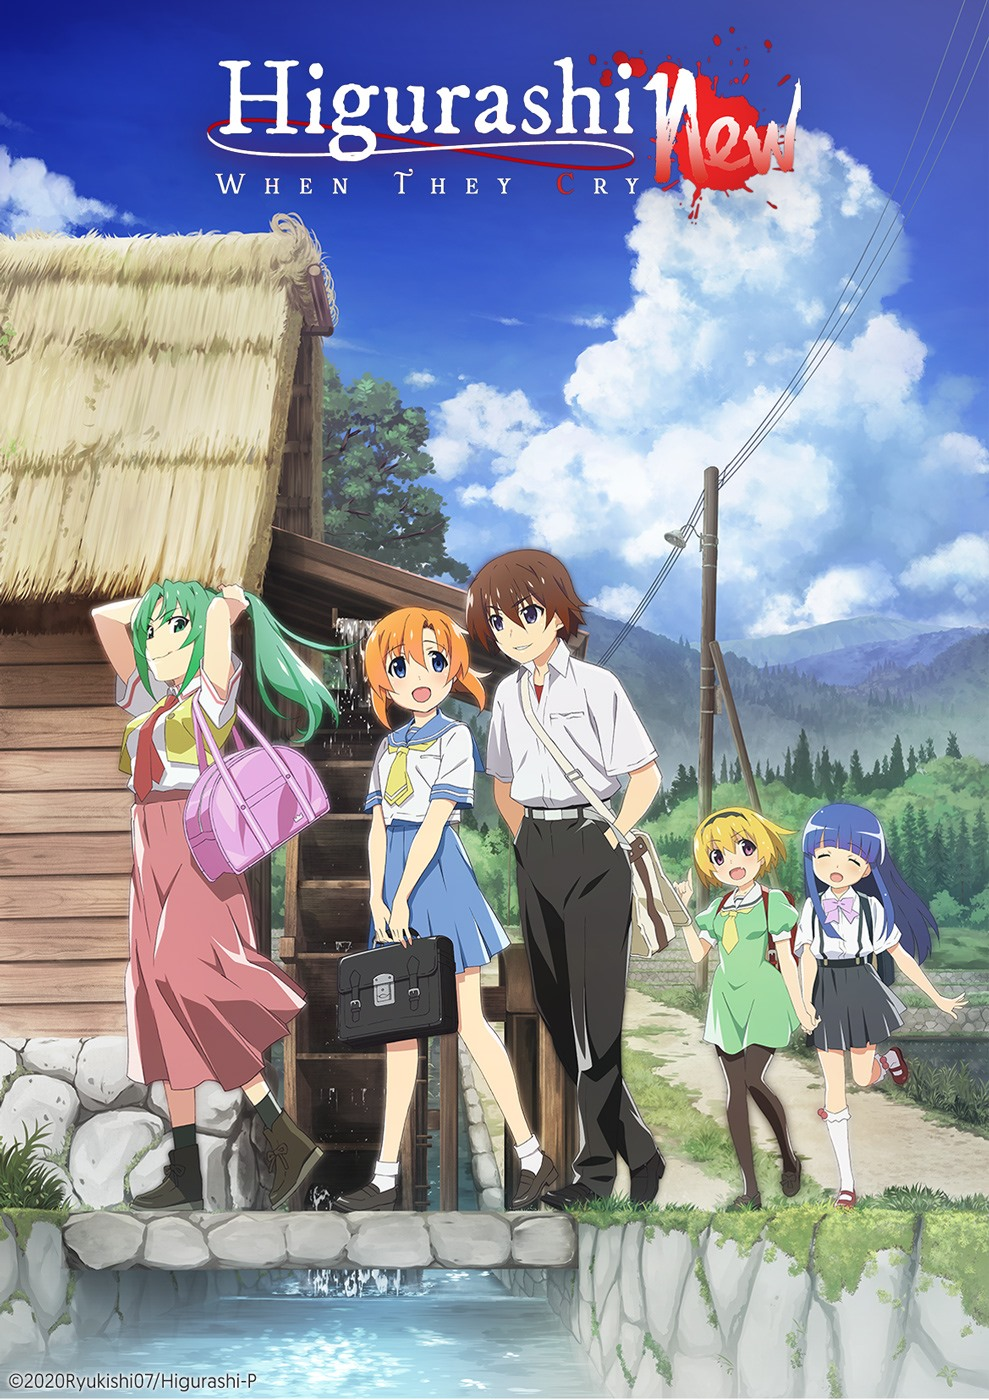 Higurashi: When They Cry - GOU (TV Series 2020– ) - IMDb